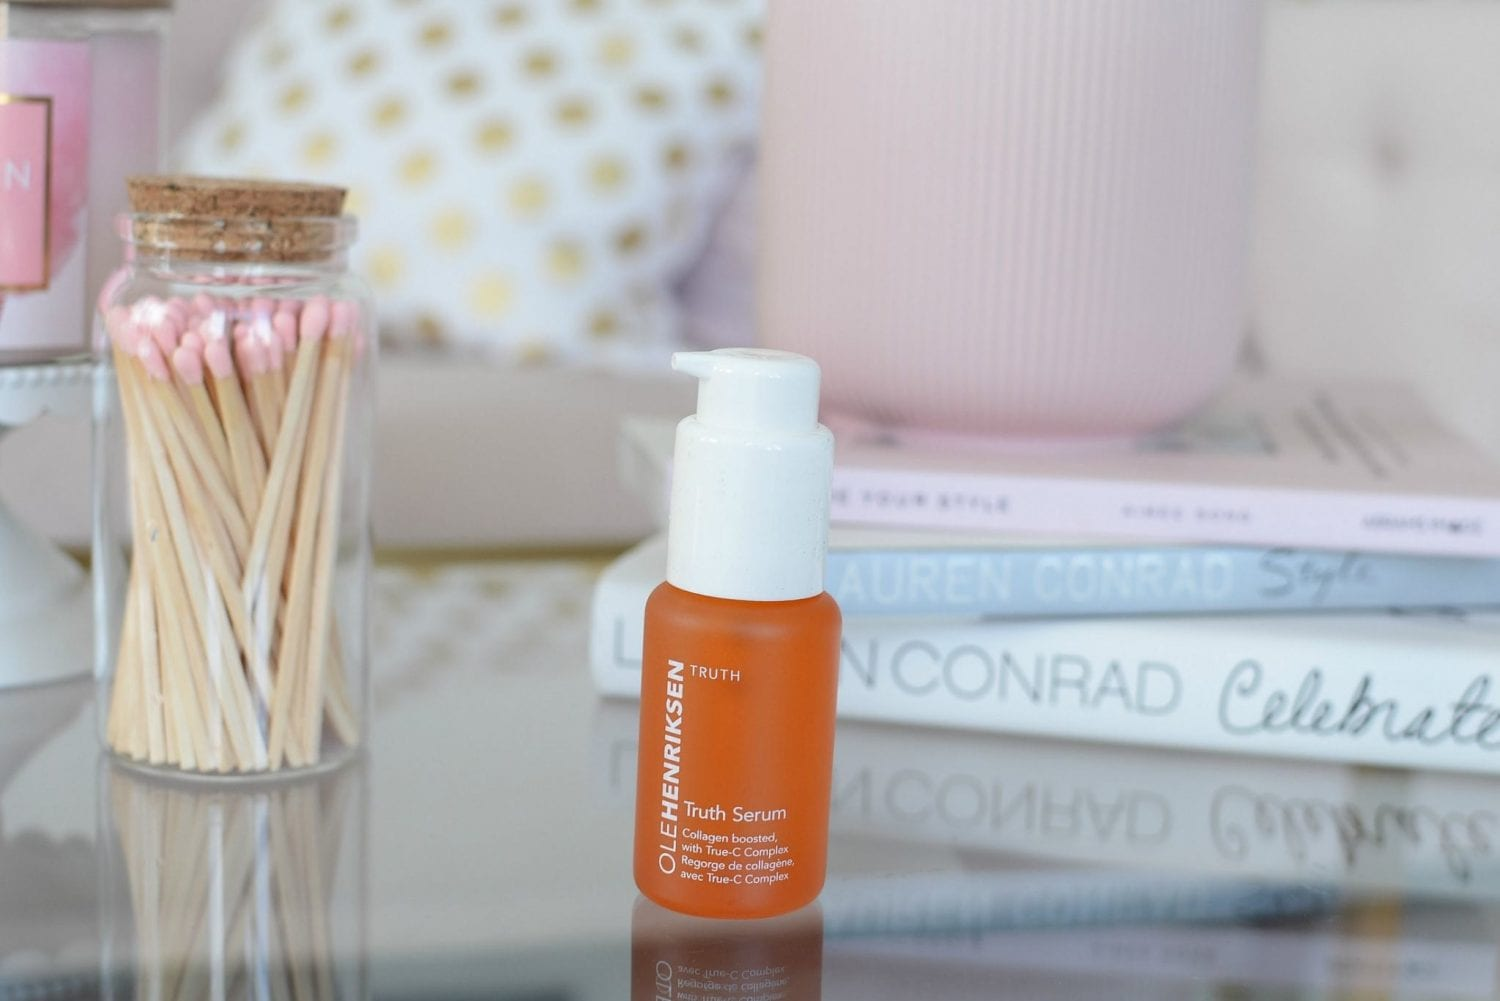 OleHenriksen Truth Serum Collagen Booster